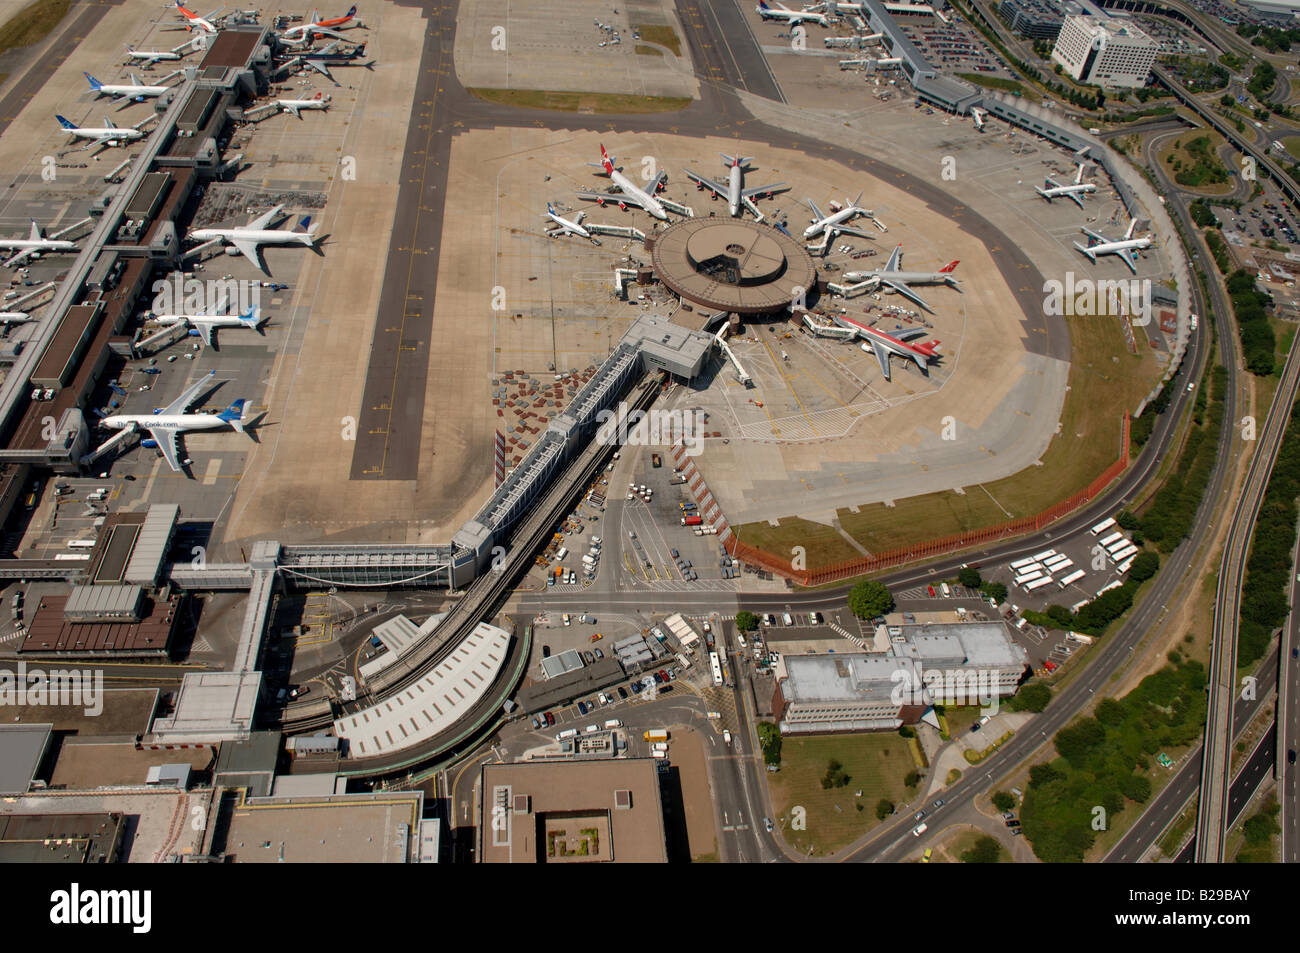 Gatwick Airport Date 12 03 2008 Ref ZB648 111149 0037 COMPULSORY CREDIT World Pictures Photoshot - Stock Image